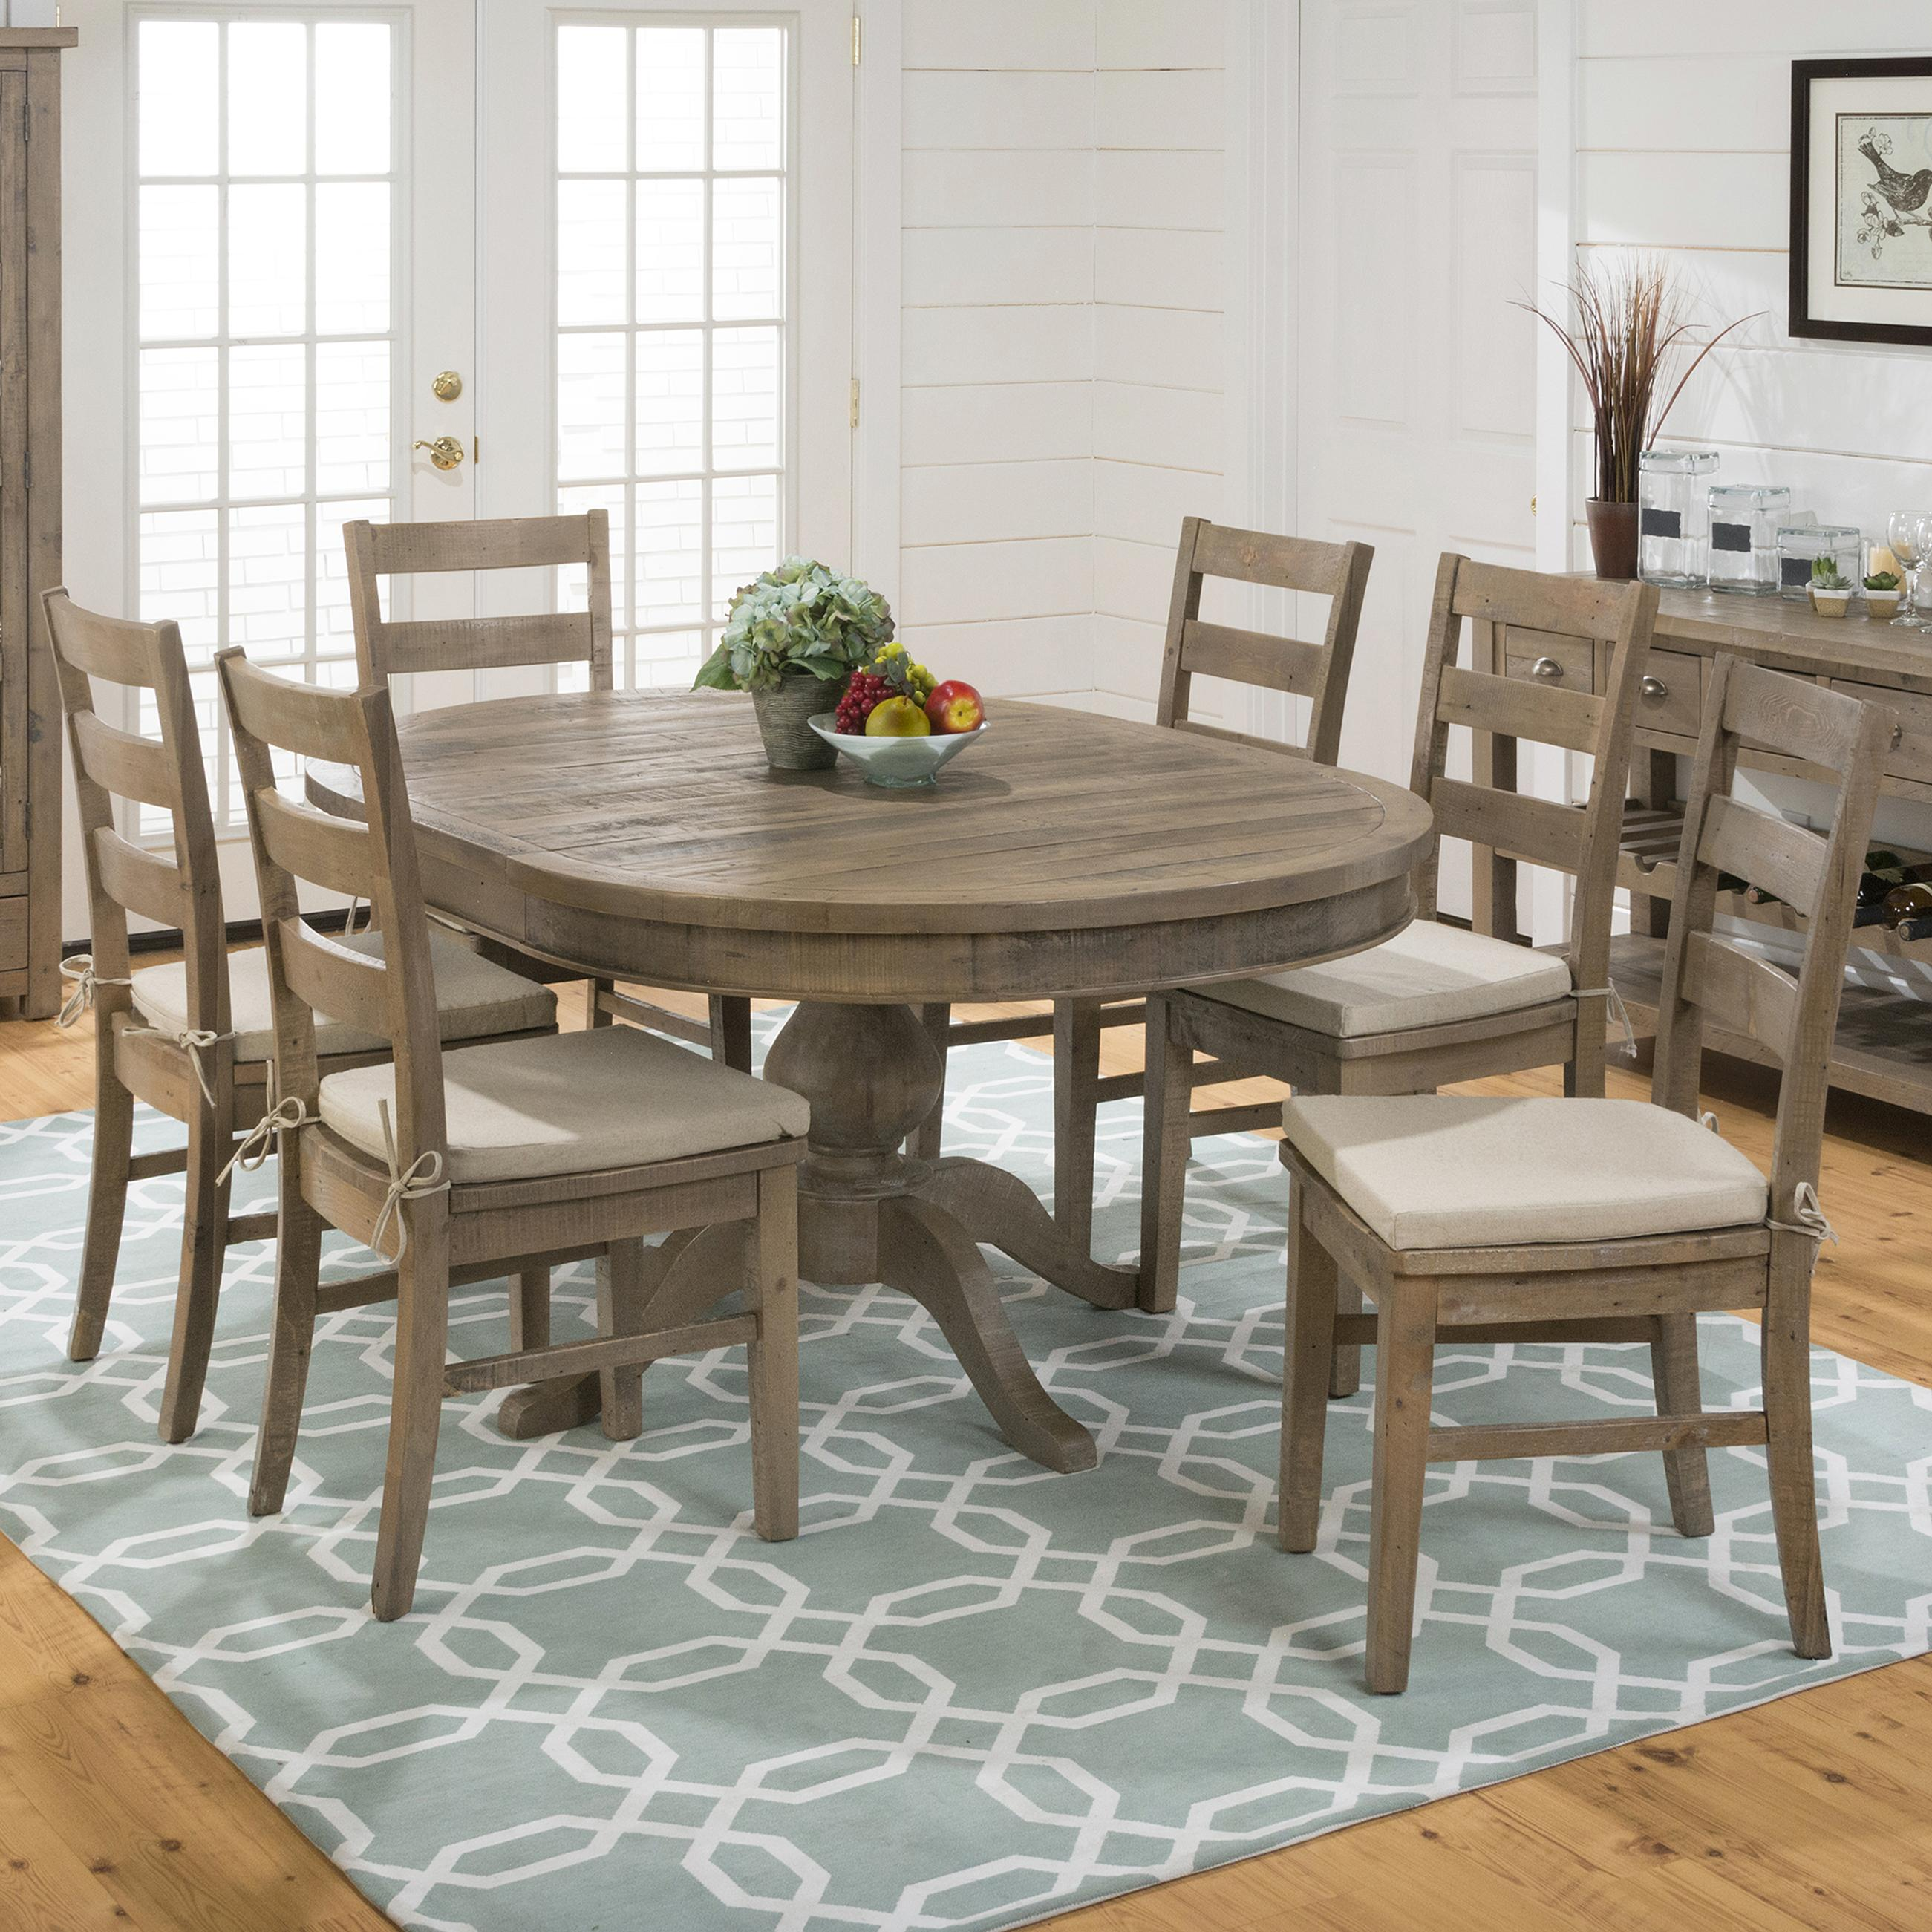 Belfort Essentials Slater Mill Pine Oval Table And